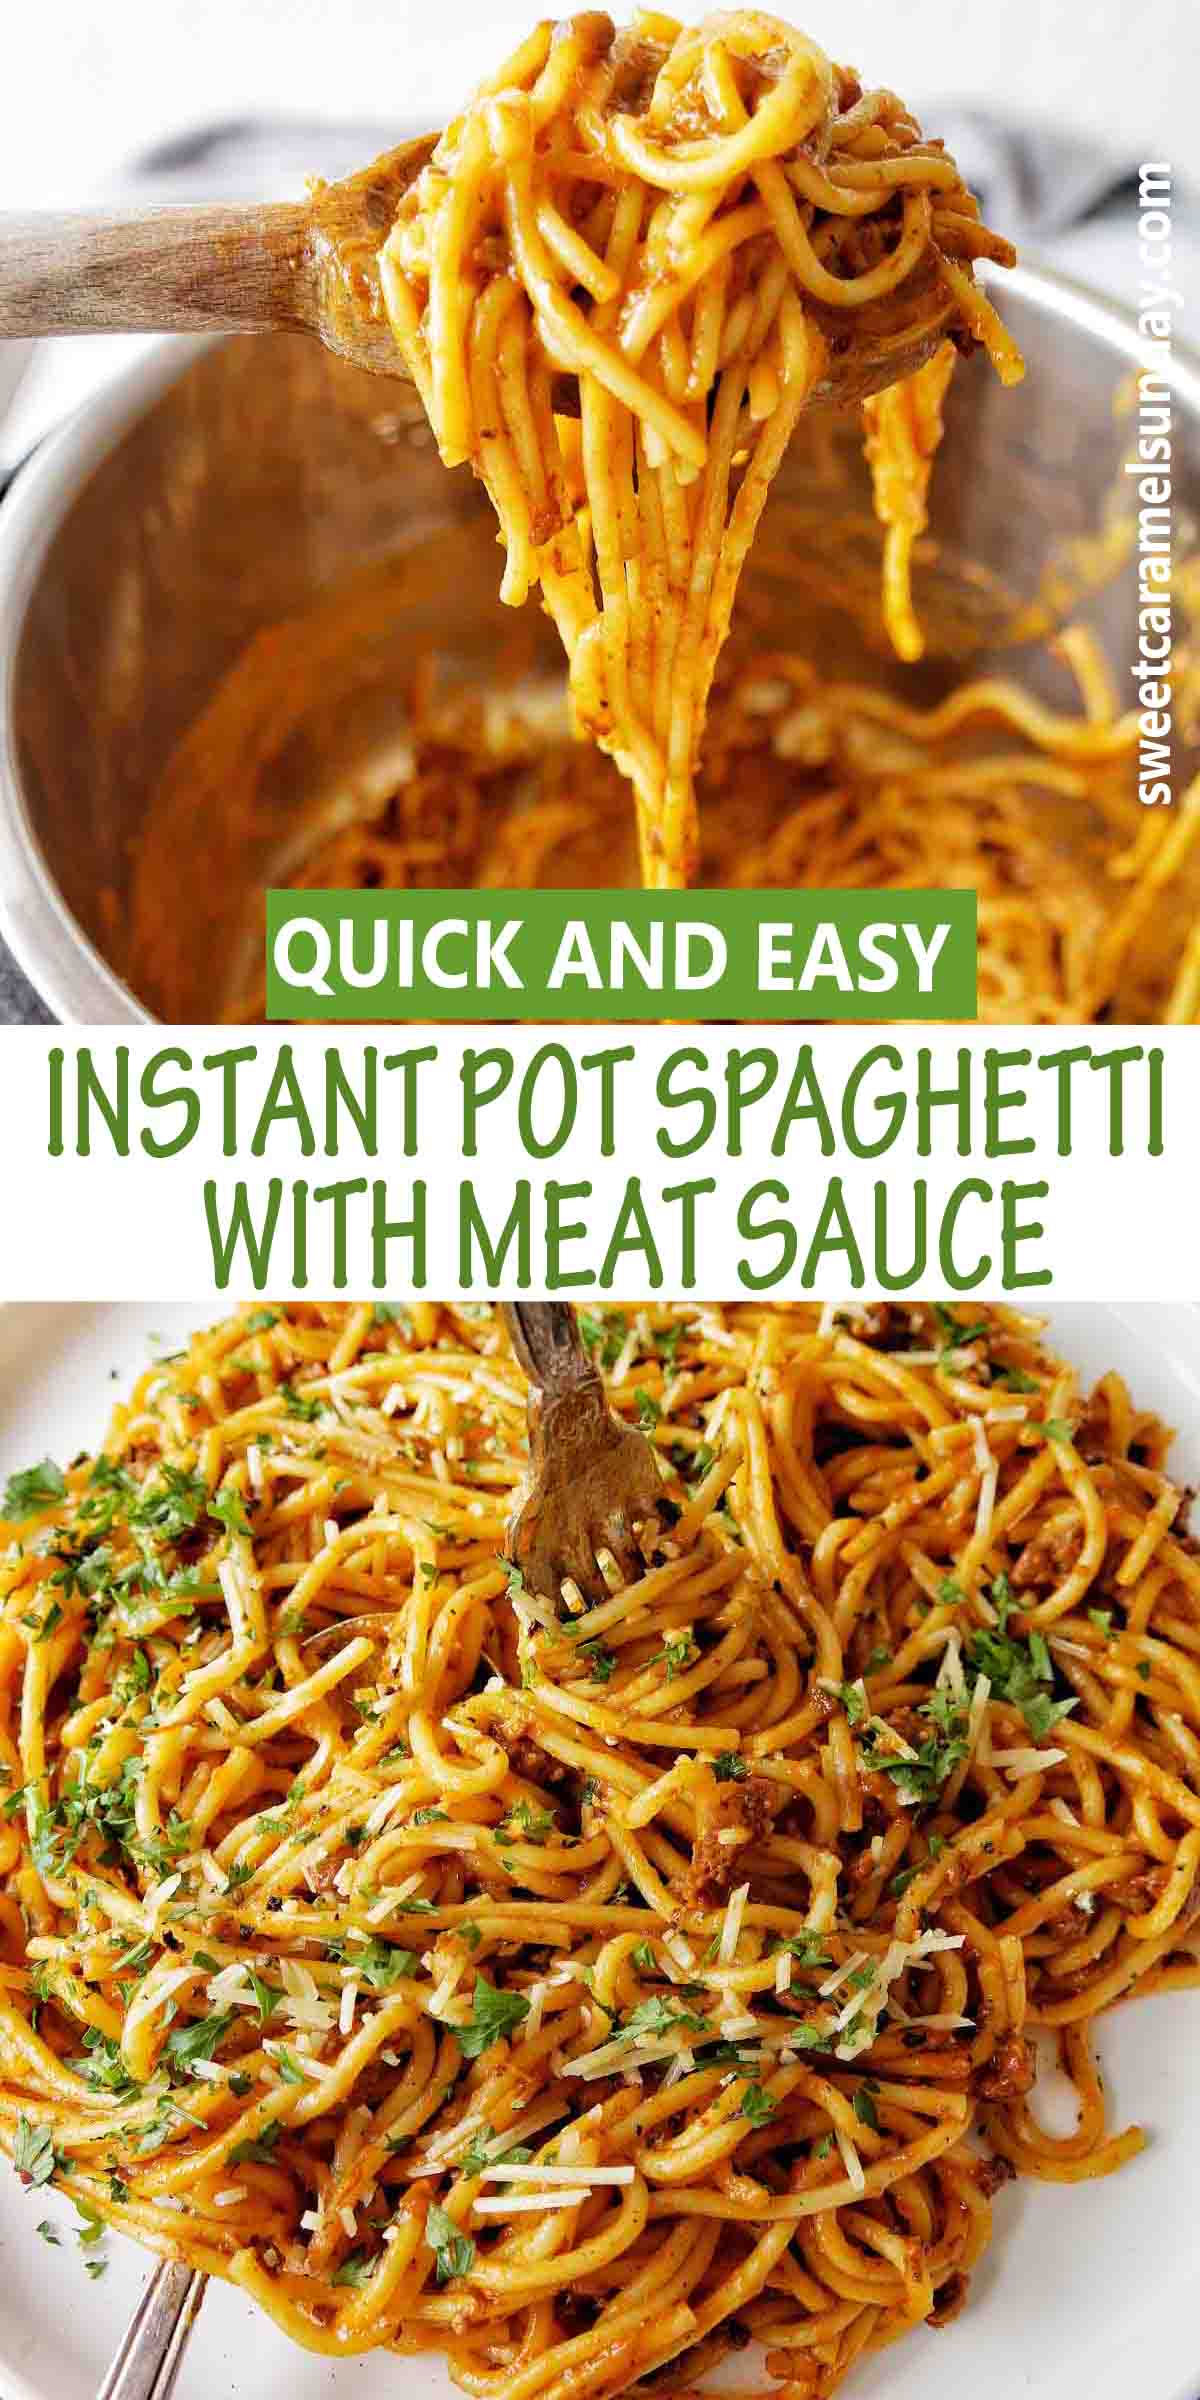 Instant Pot Spaghetti with Meat Sauce and text label